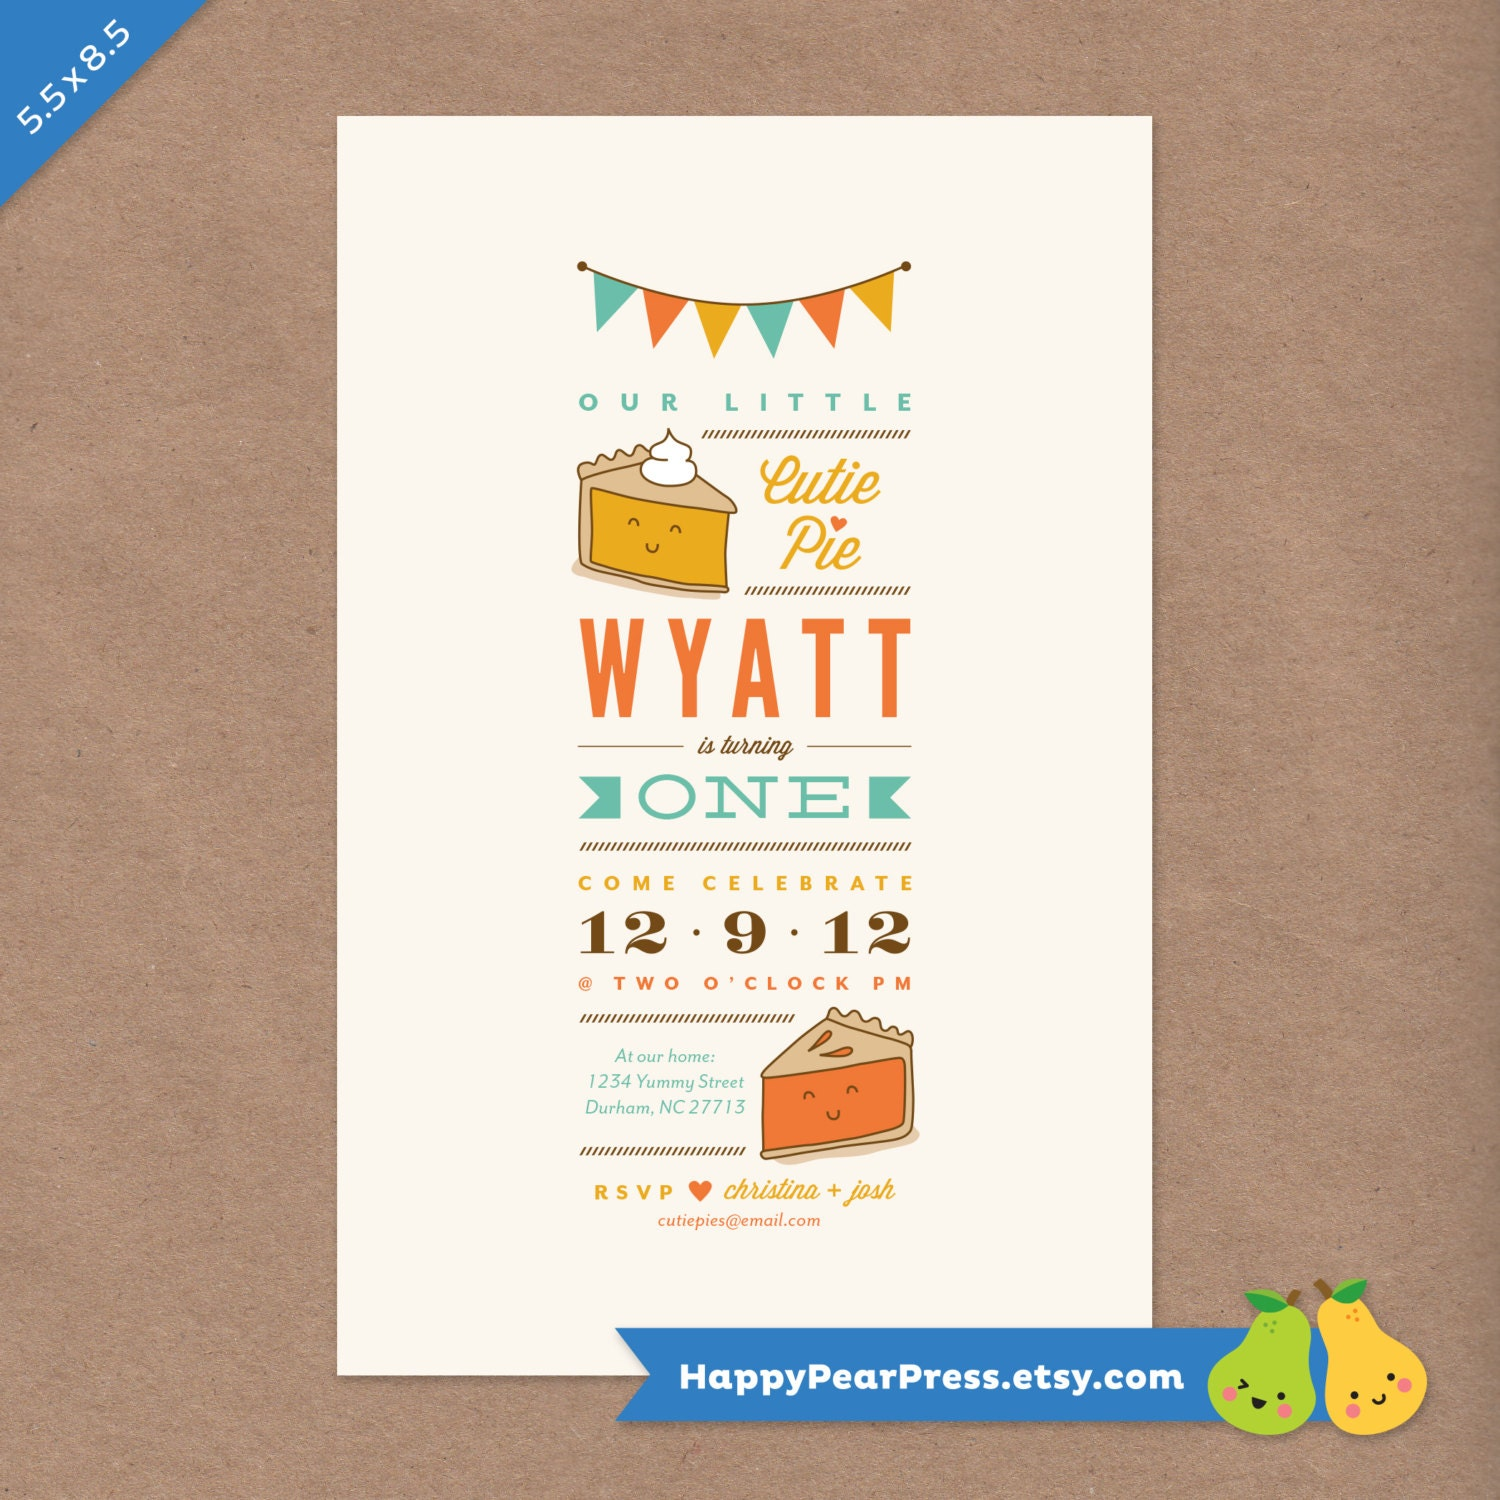 Cutie Pie Party Printable Birthday Invitation // DIY Custom | Etsy